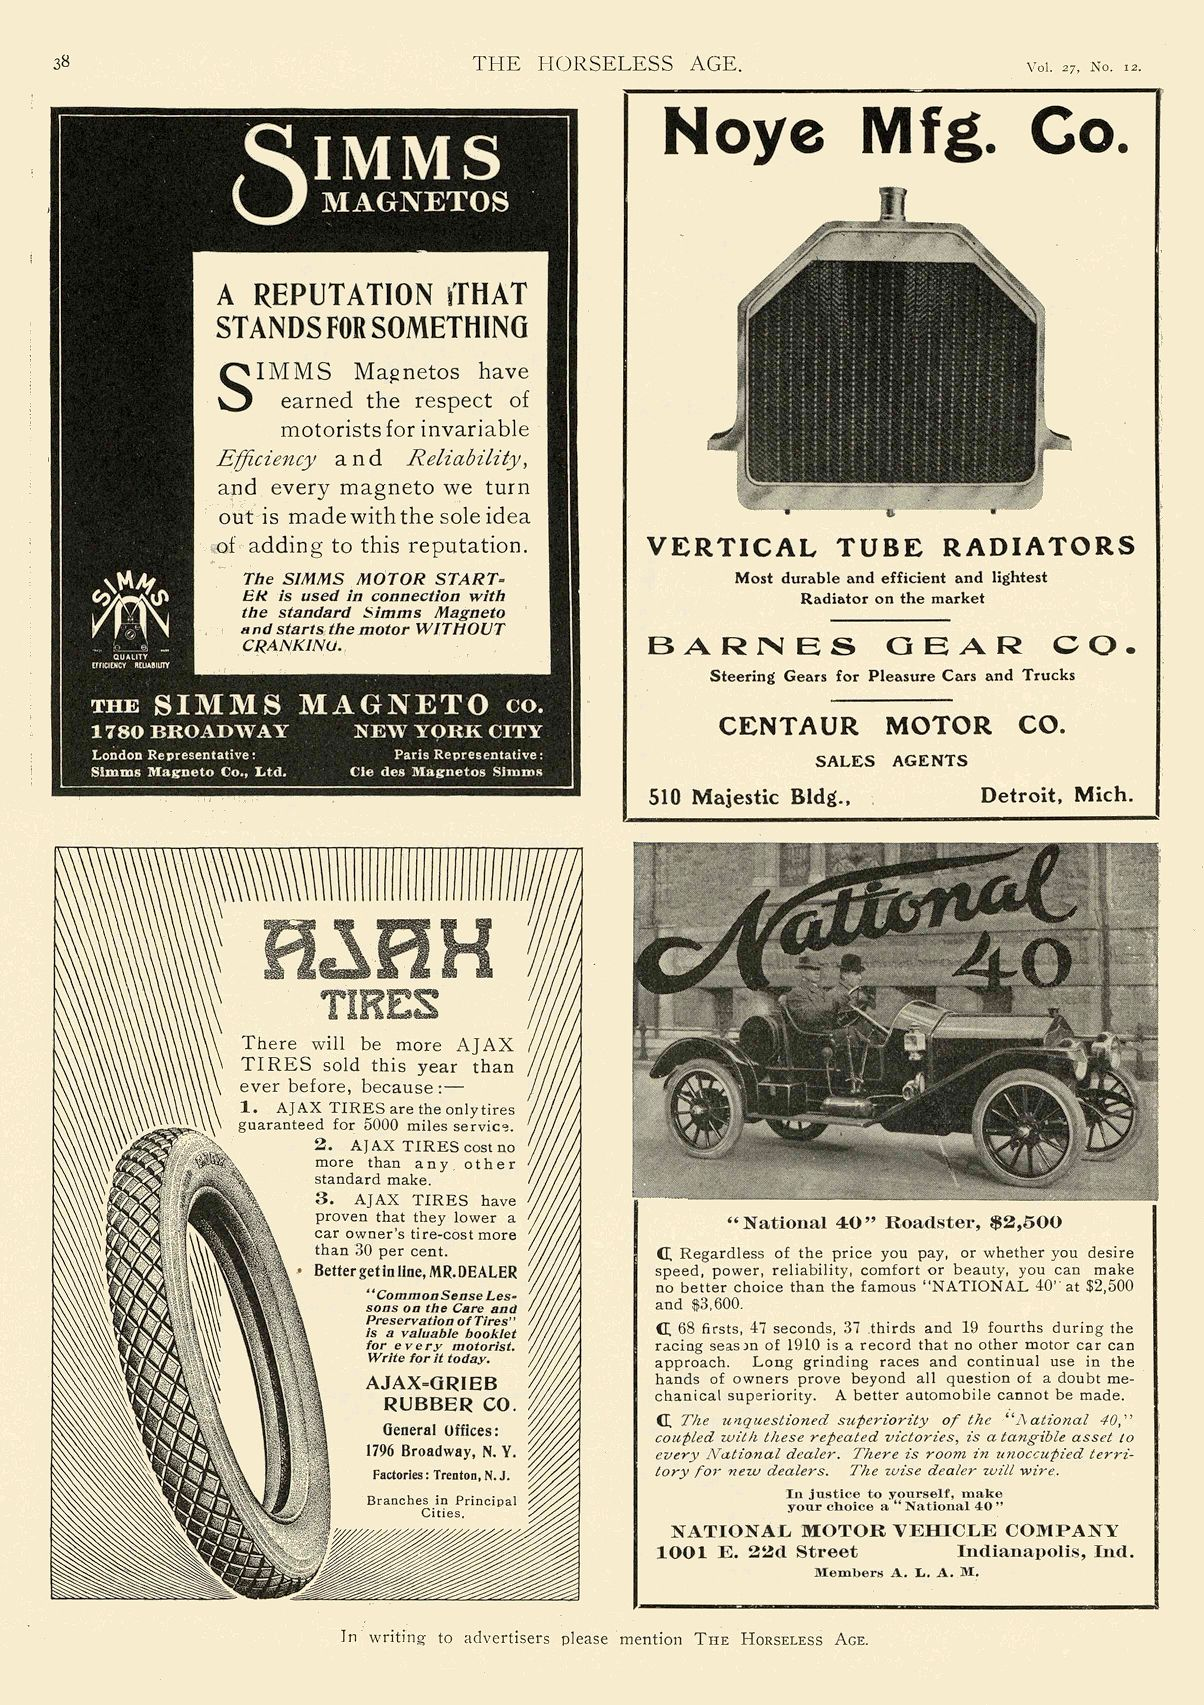 """1911 3 22 NATIONAL """"National 40″ Roadster, $2,500 NATIONAL MOTOR VEHICLE COMPANY Indianapolis, IND THE HORSELESS AGE March 22, 1911 8.25″x12"""" page 38"""